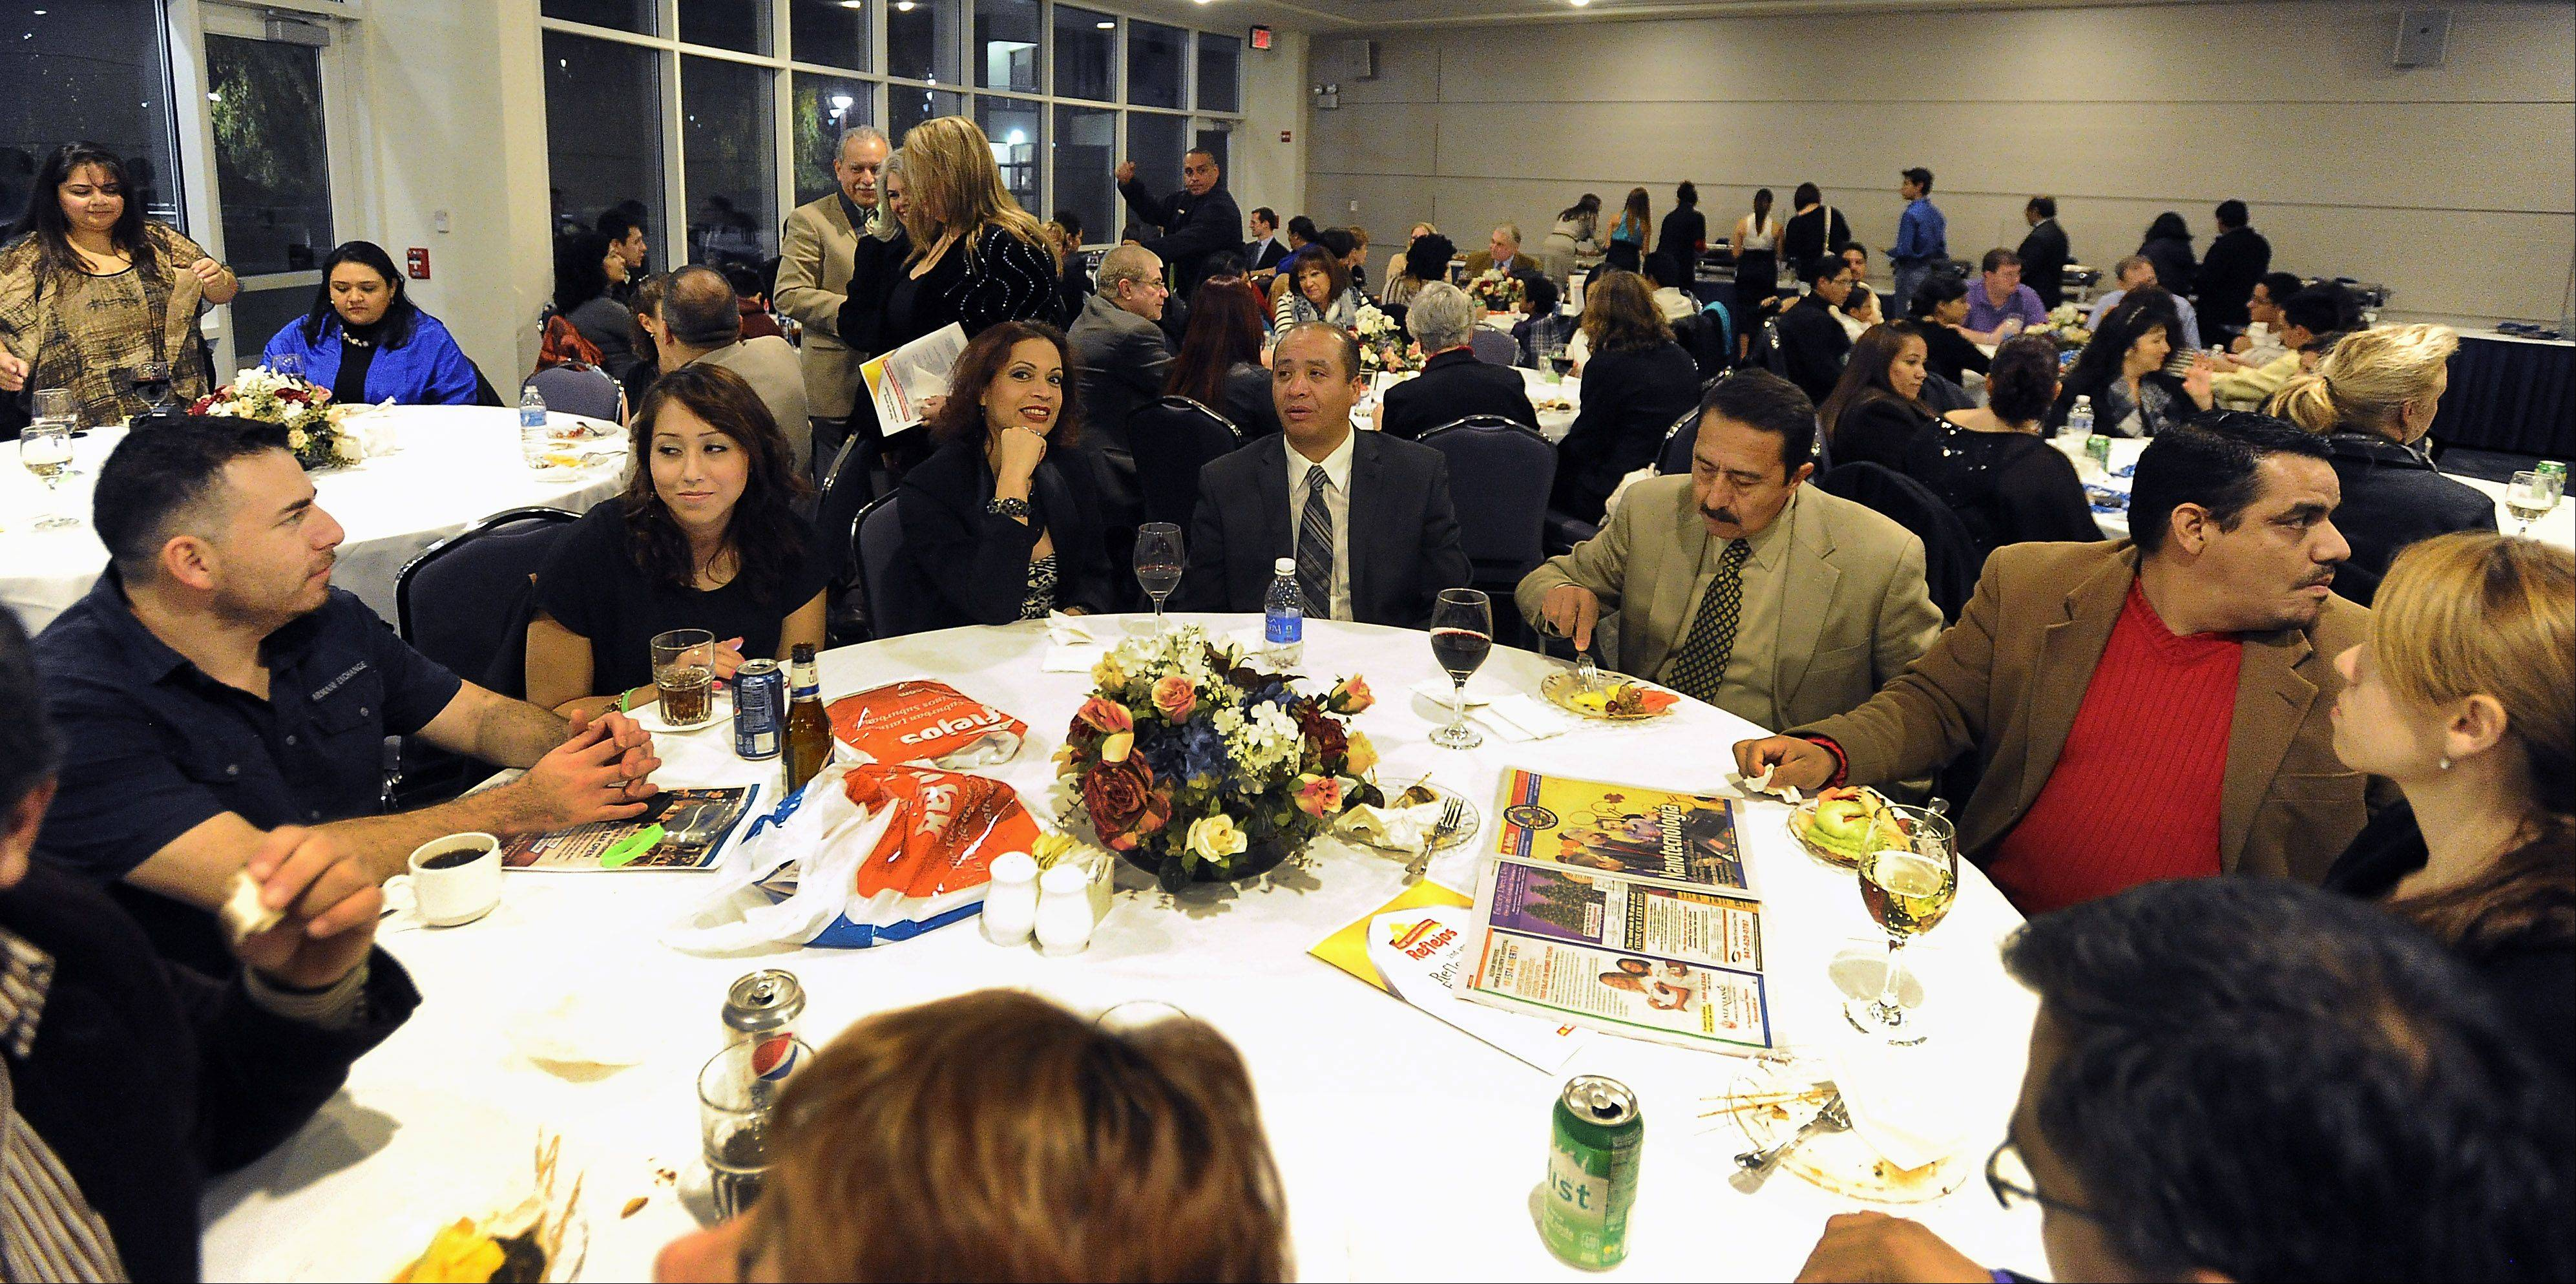 People who serve the Latino community were honored at the Daily Herald Reflejos Reflecting Excellence Awards event at Harper College on Thursday.